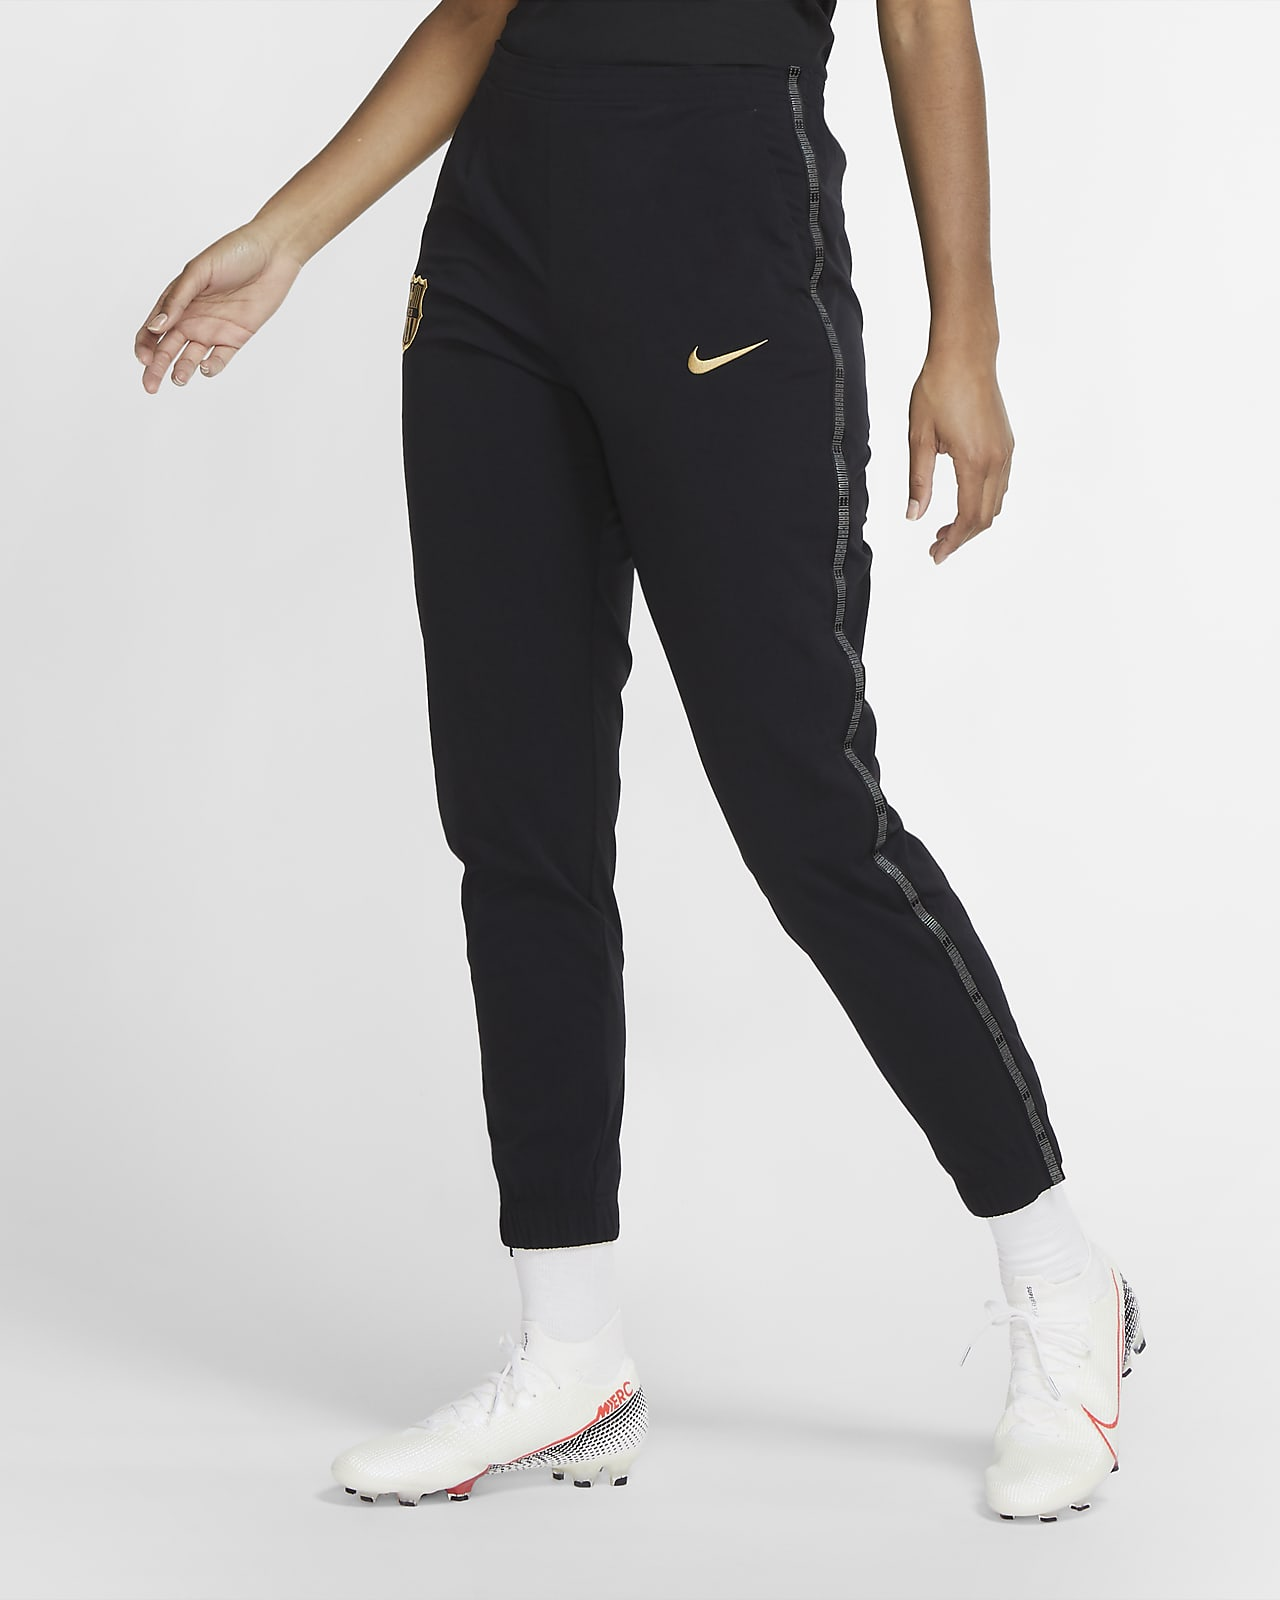 F.C. Barcelona Women's Woven Football Pants